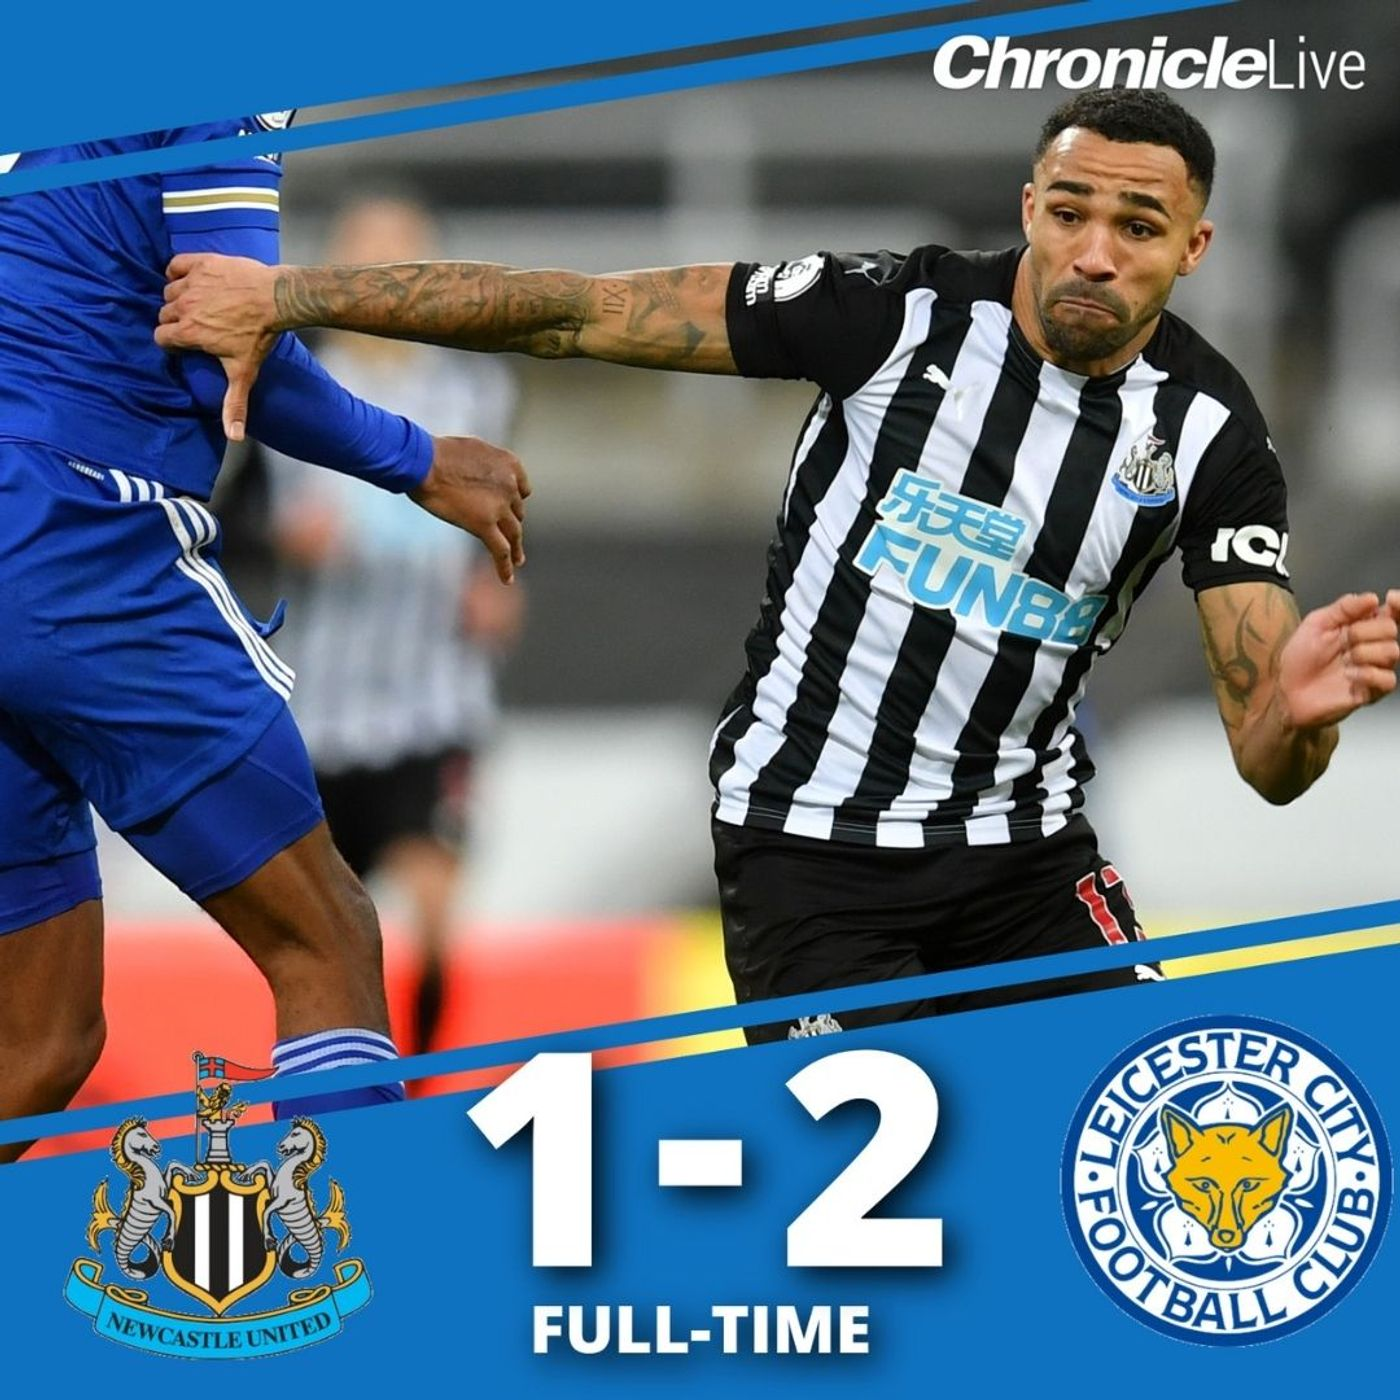 NUFC start 2021 with a defeat as they fall 2-1 to Leicester City